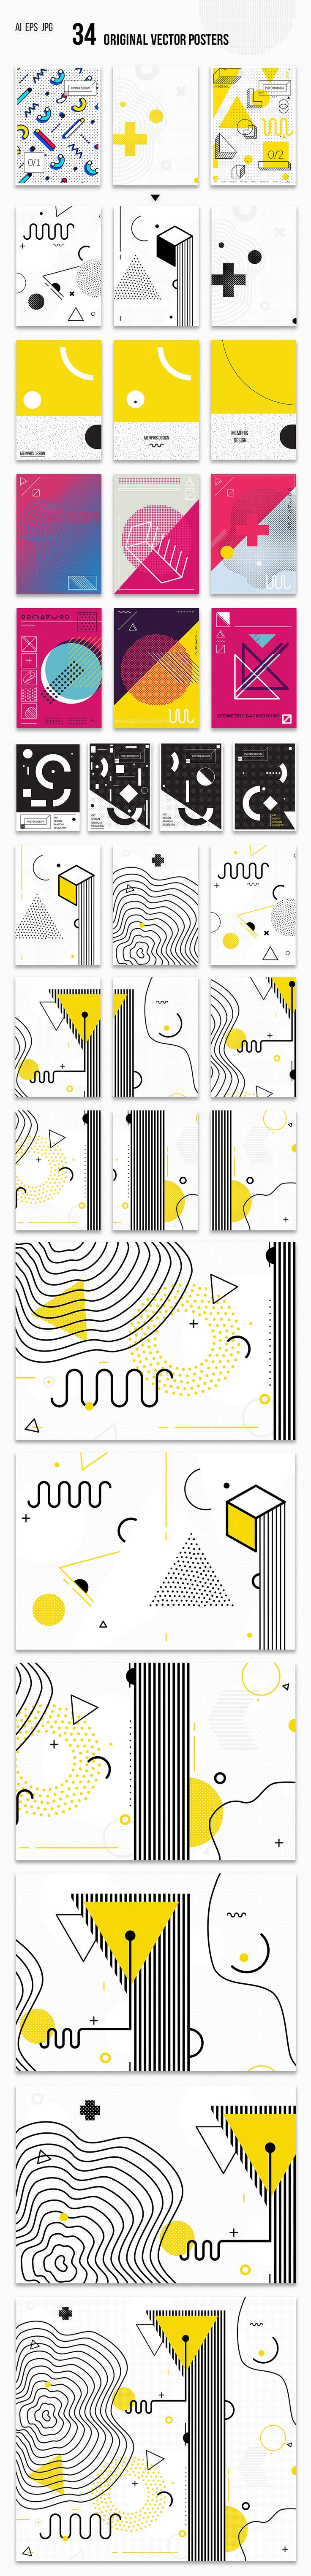 a {text-decoration: none} Memphis Megabundle Today we've brought you yet another exclusive deal, with loads of content for a minimum cost. In this bundle of bundles, you'll find over 450 vector patterns, 500 Posters, Sale Tags, Badges and much more, all designed in Memphis and Neo-Memphis styles, as well as 100 seamless Universal Patterns in black and white, and 80+ Floral Watercolor Designs. Everything included in this bundle contains its own respective Vector Sources in A...